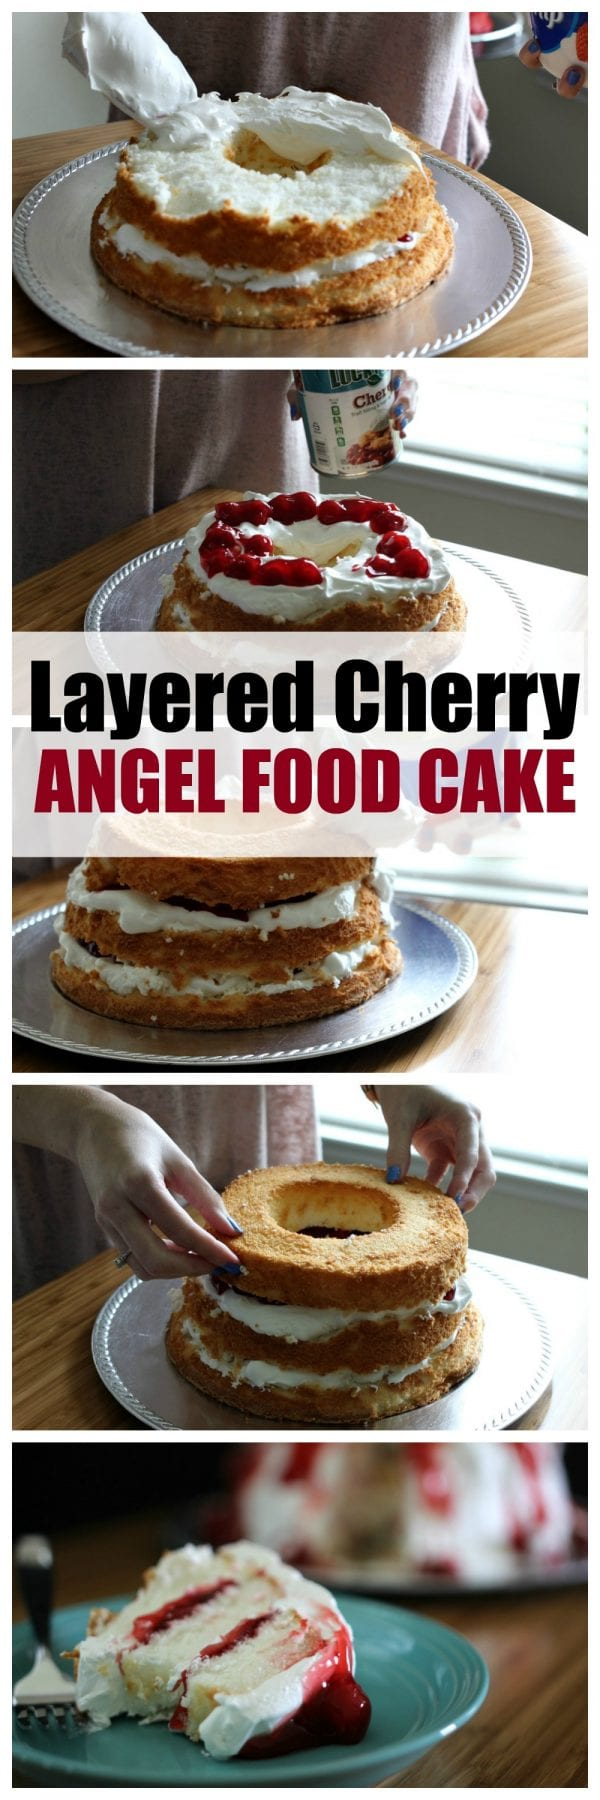 Layered Angel Food Cake Mix with Cherry Pie Filling